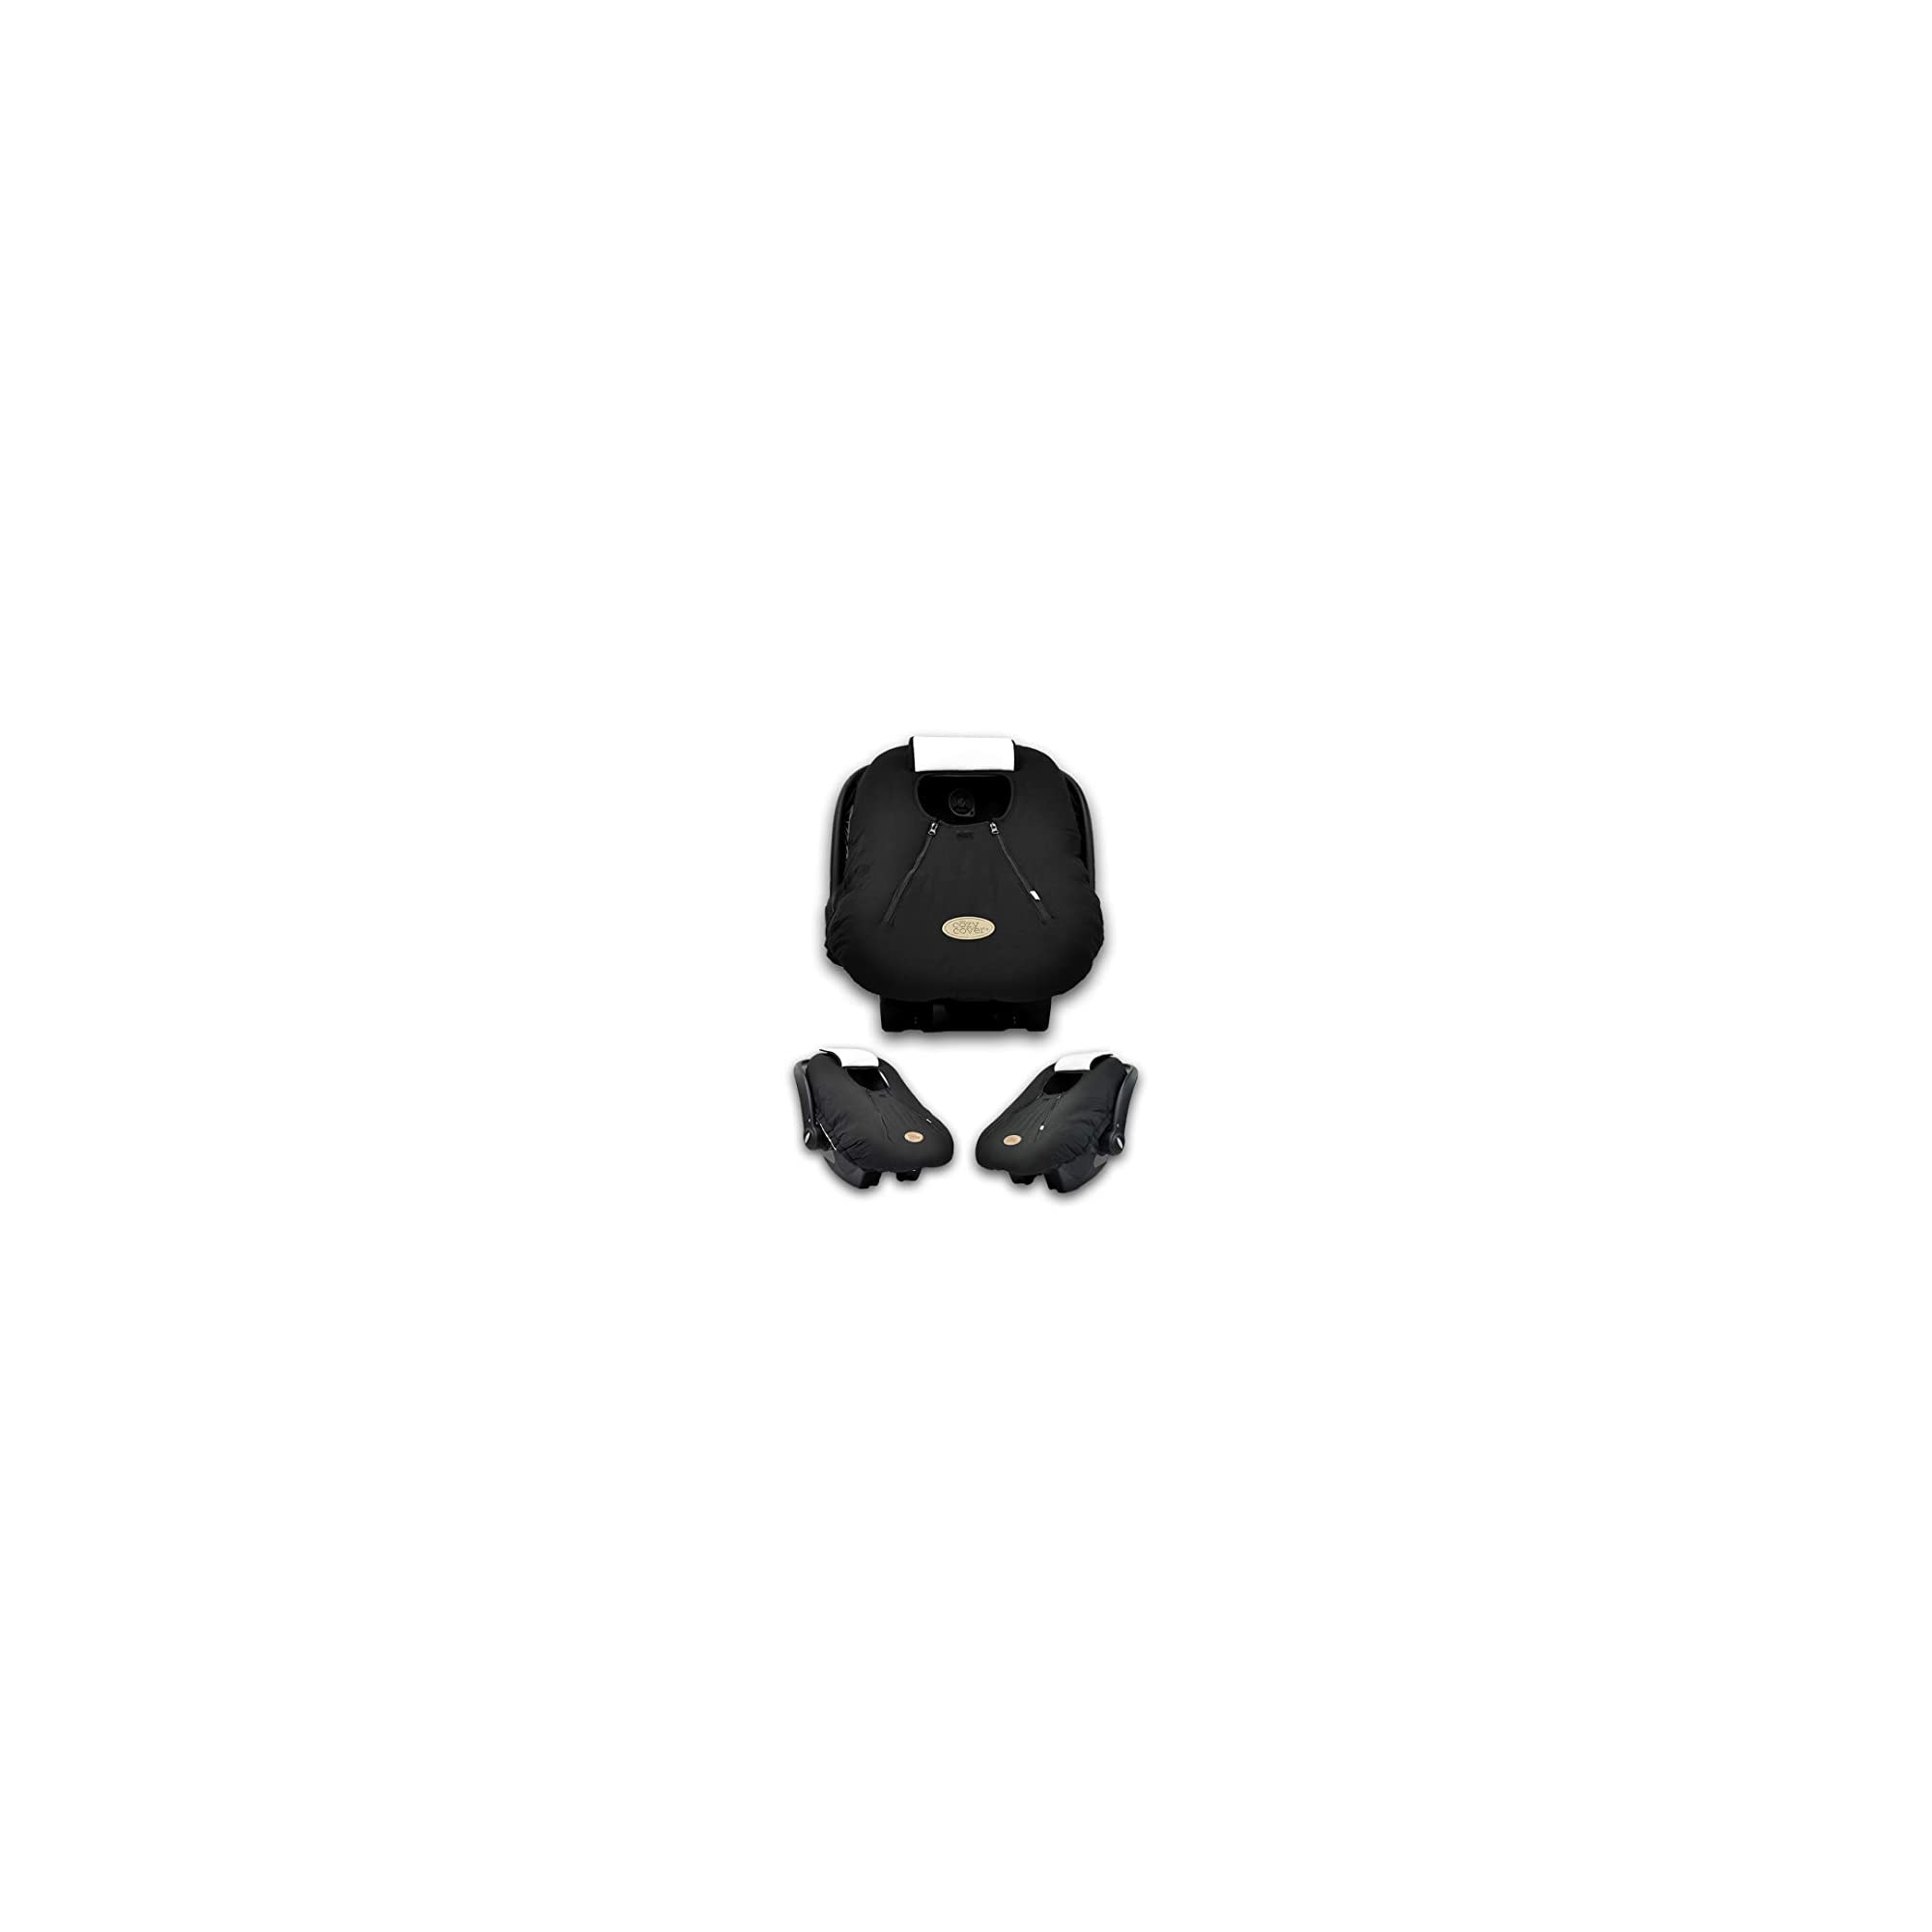 Cozy Cover Infant Car Seat Cover (Black) – The Industry Leading Infant Carrier Cover Trusted by Over 6 Million Moms Worldwide for Keeping Your Baby Cozy, Warm